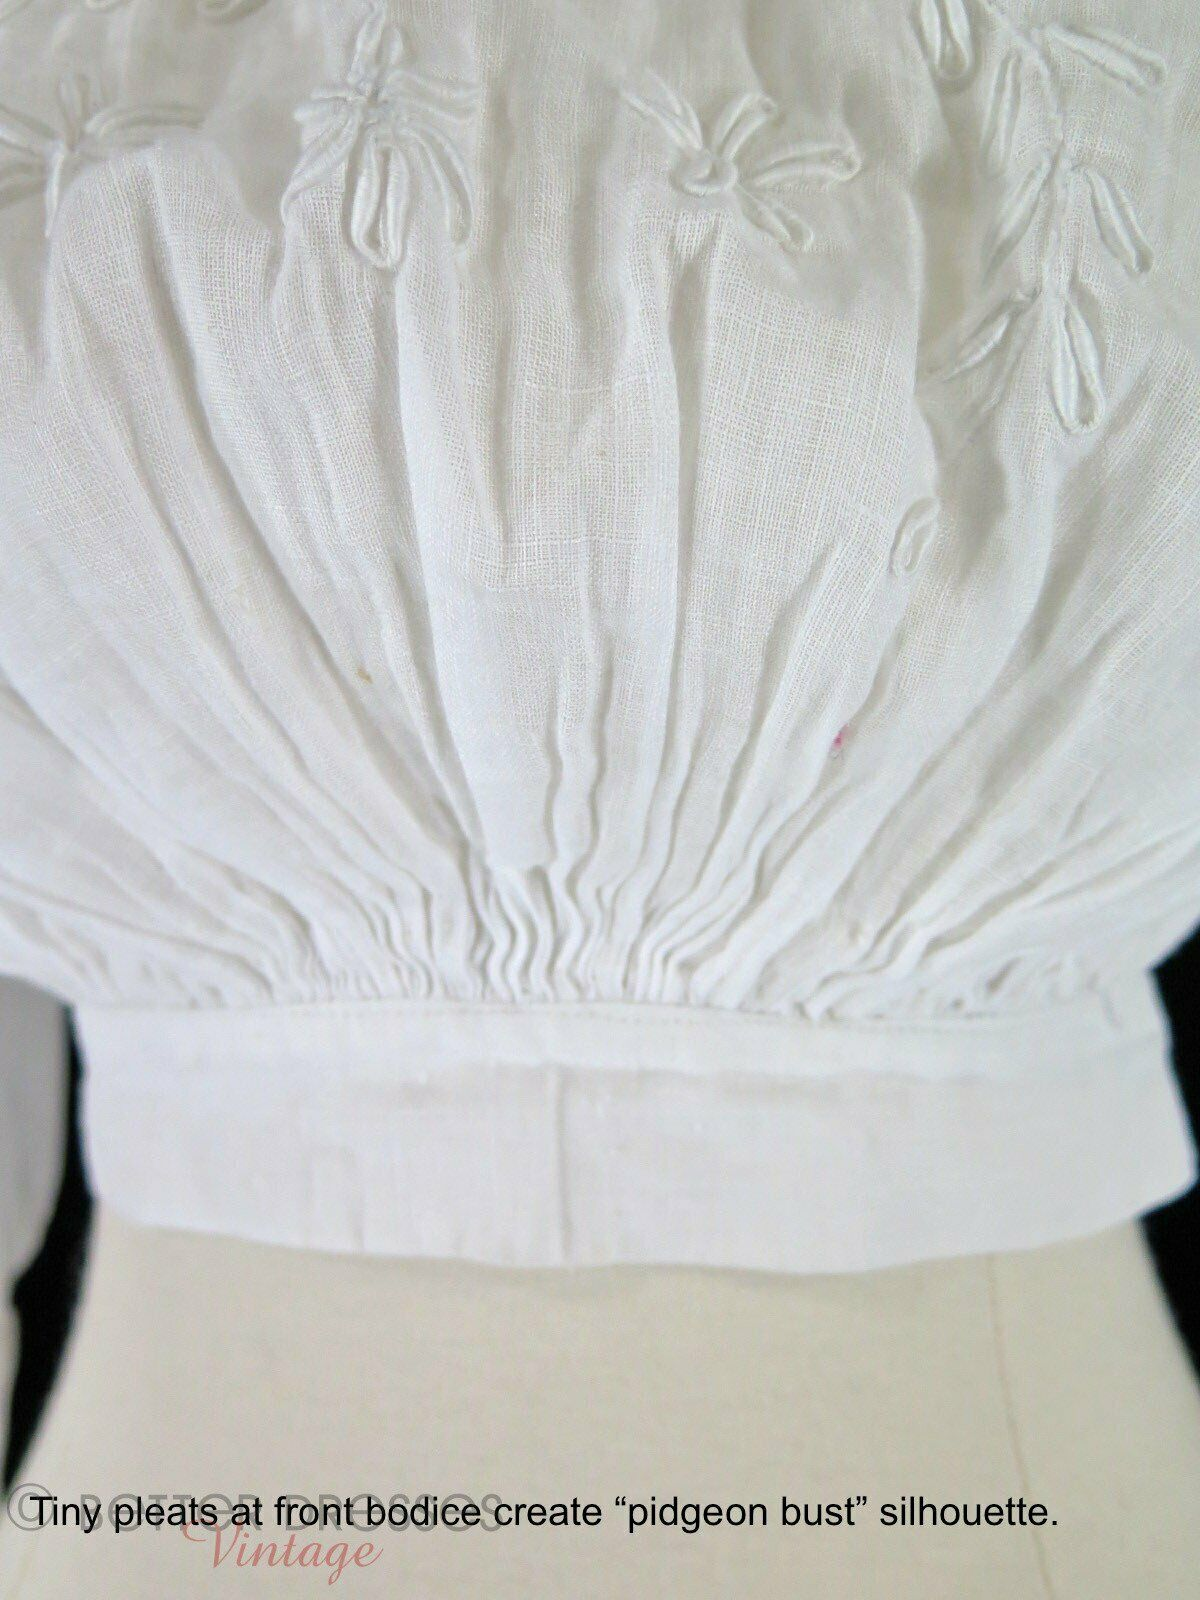 Antique Embroidered Blouse - xs, sm - image 5